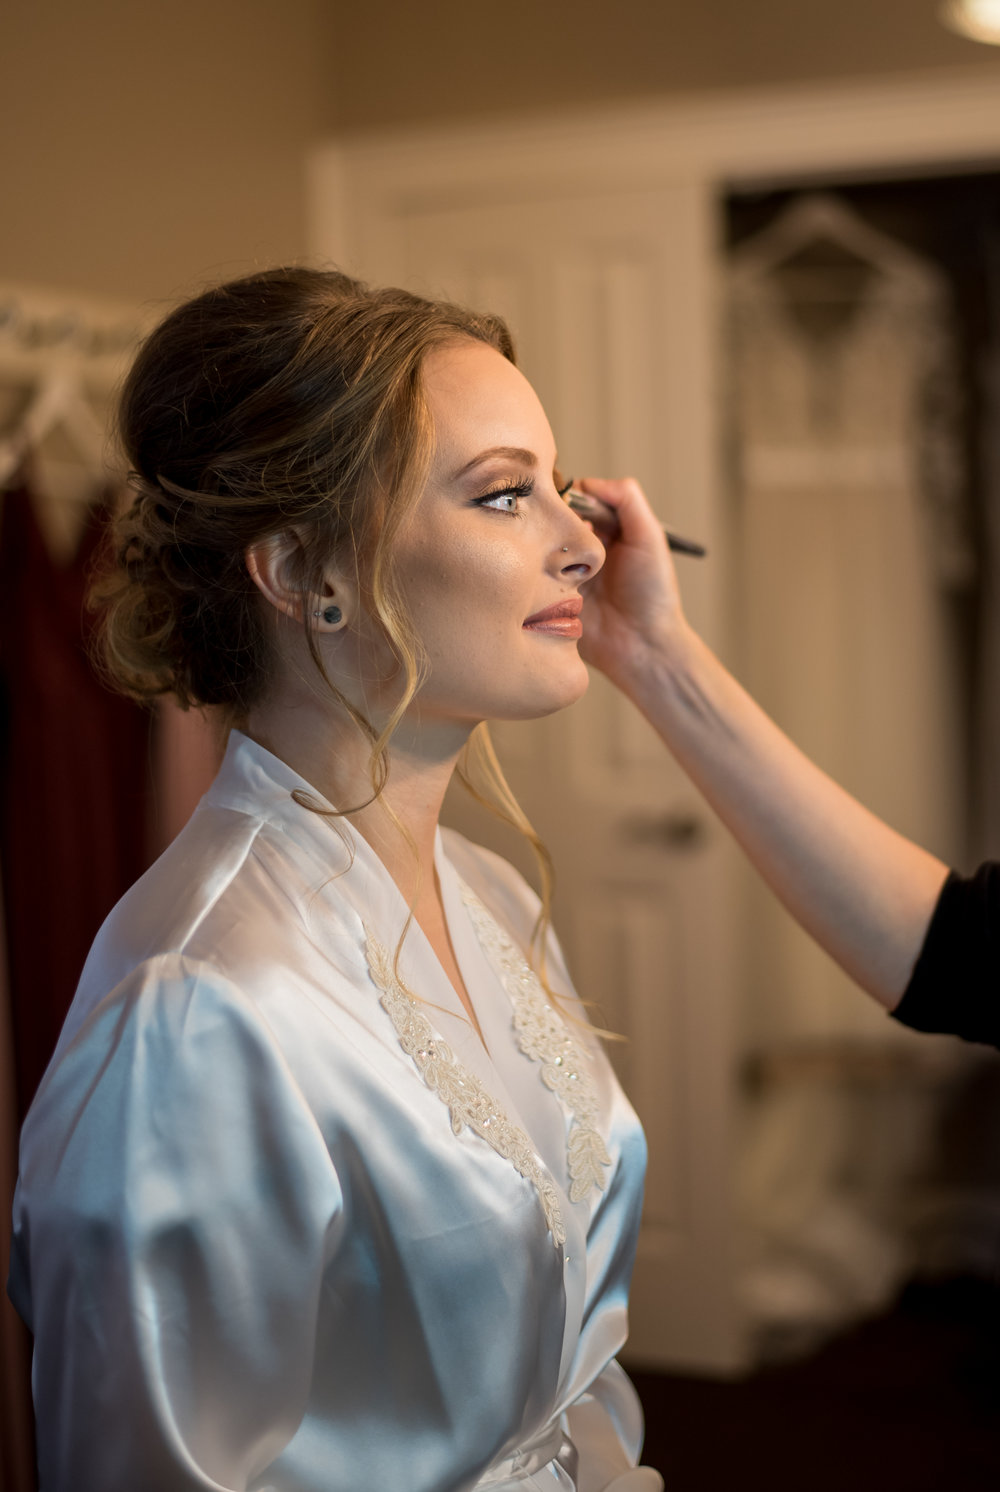 bridal-makeup-portrait-old-daley-on-crooked-lake-ny-wedding-ym-photography